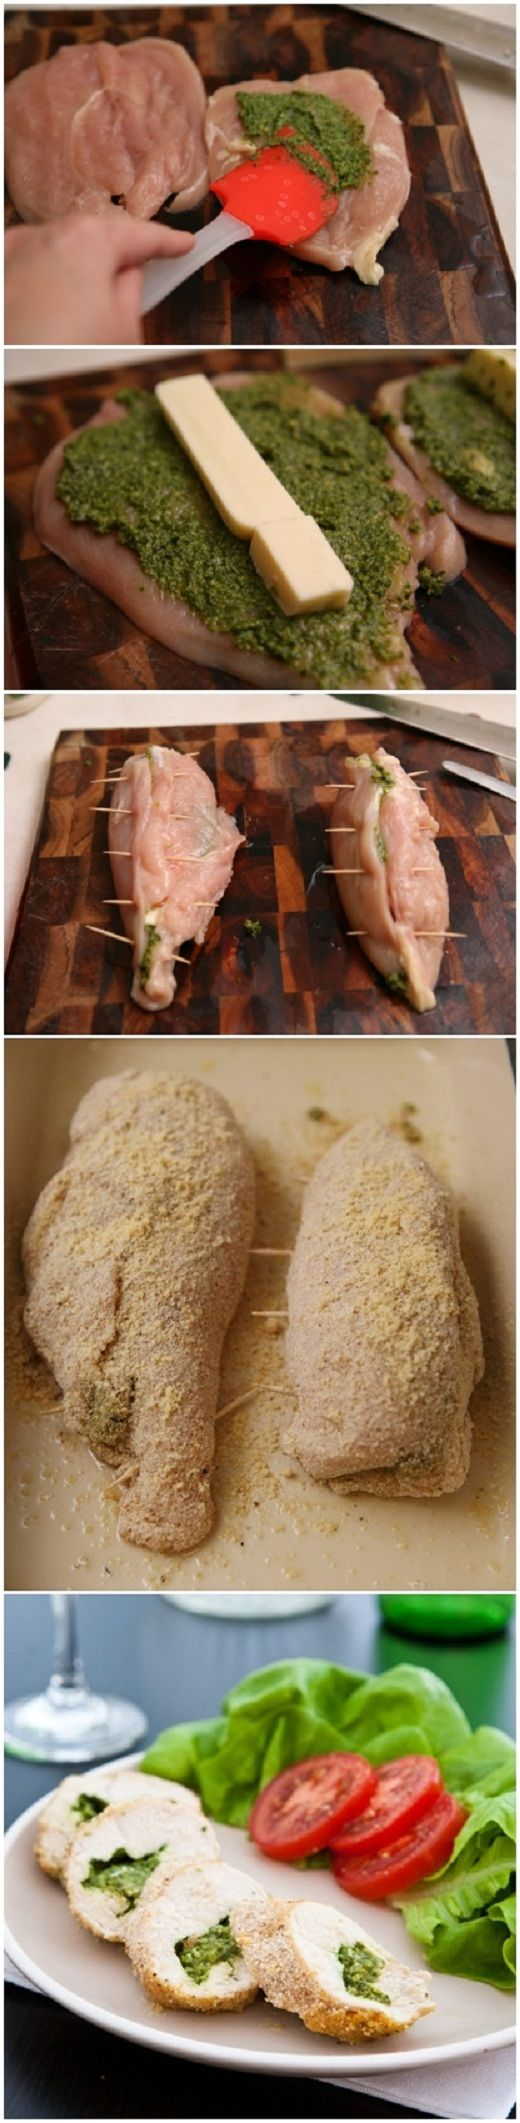 Mozzarella-Pesto Stuffed Chicken Breasts. This sounds amazing.